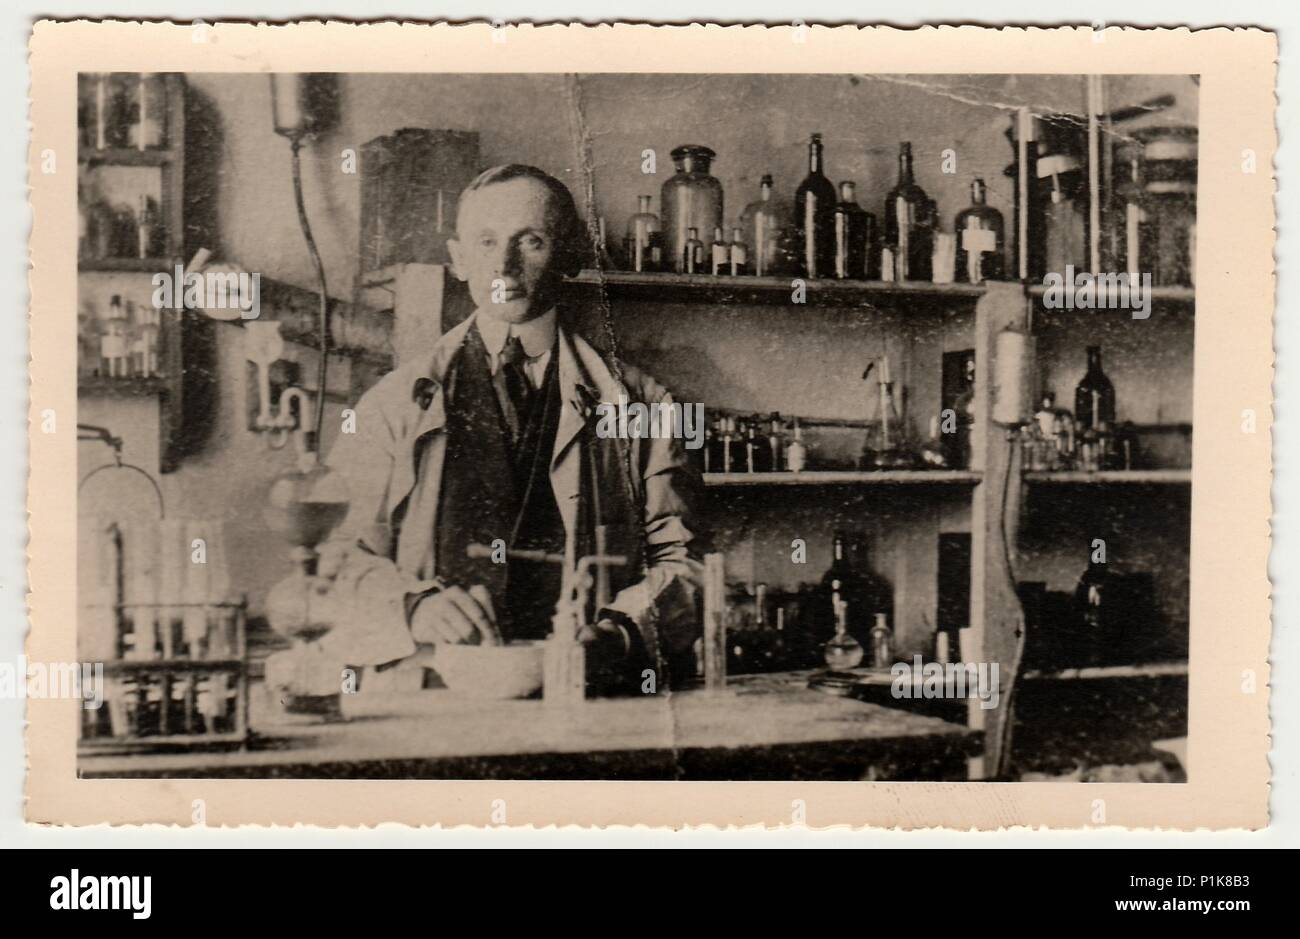 THE CZECHOSLOVAK REPUBLIC - CIRCA 1940s: Vintage photo shows man in the  chemistry laboratory. Black & white antique photography.